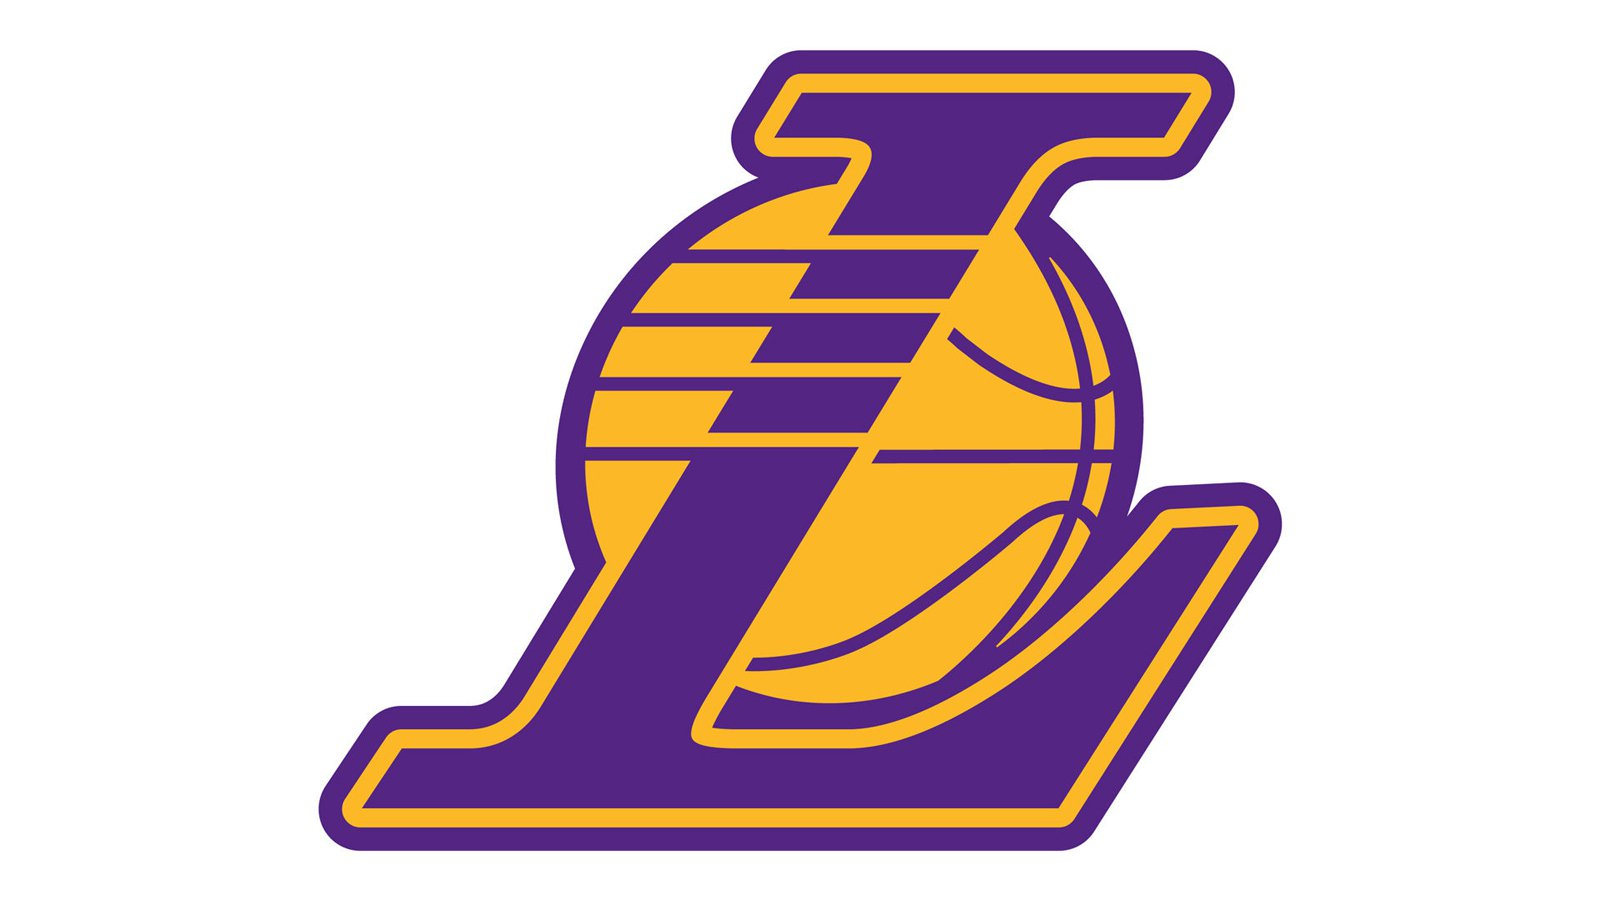 Los Angeles Lakers logo and symbol, meaning, history, PNG